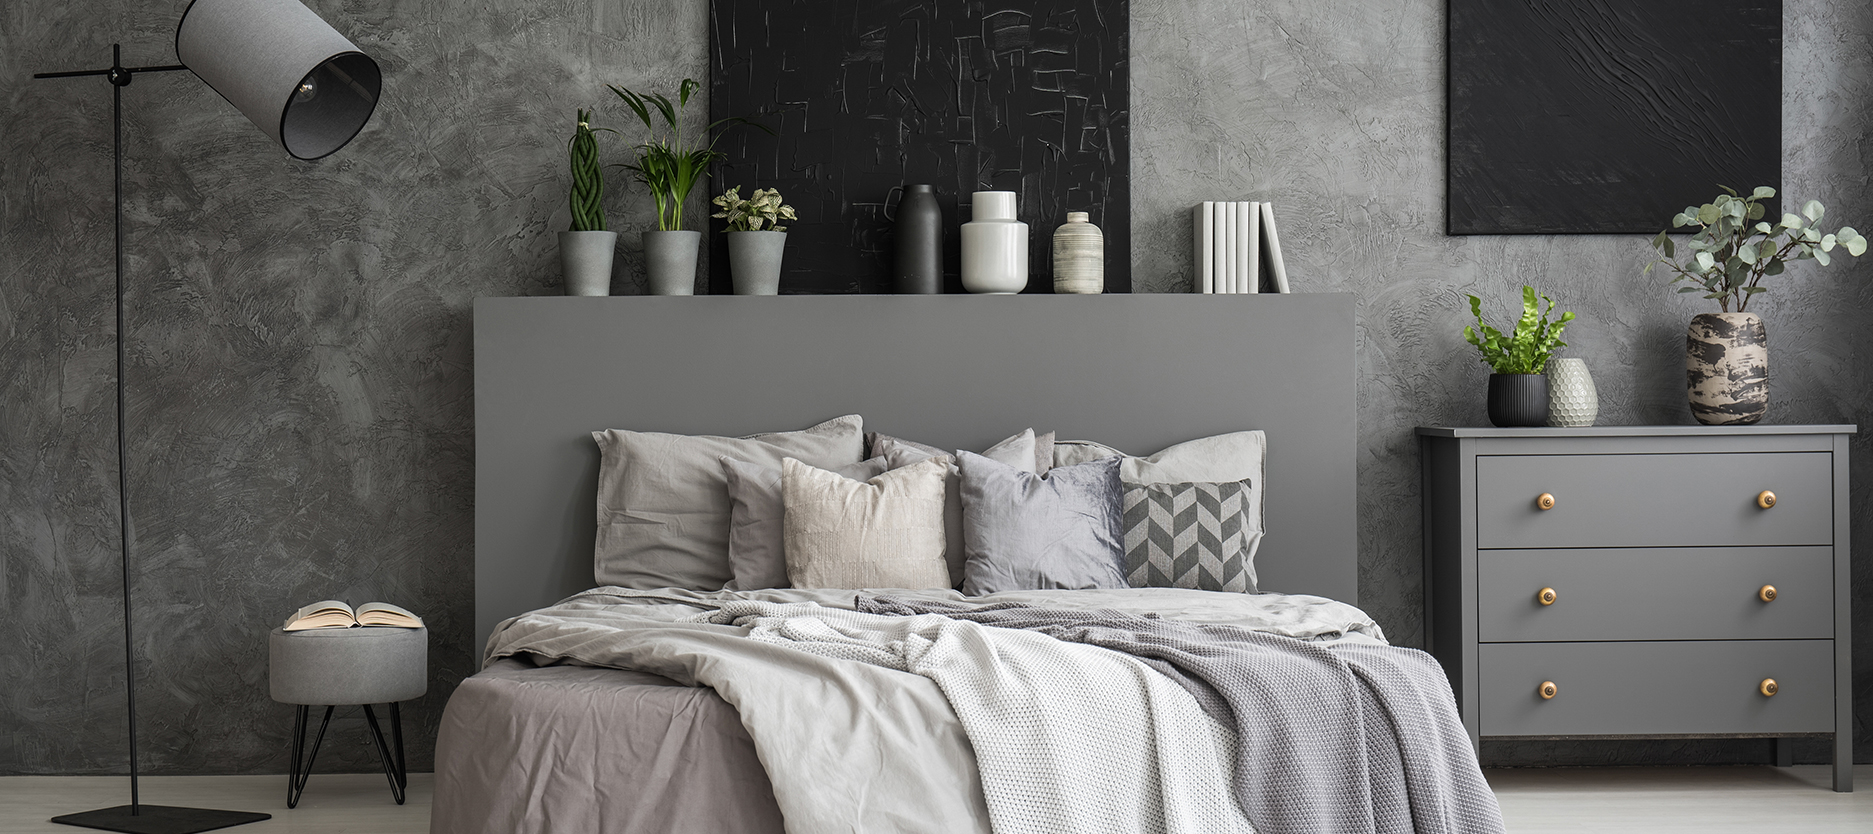 How to Use the Colour of Sophistication - Grey to its Best